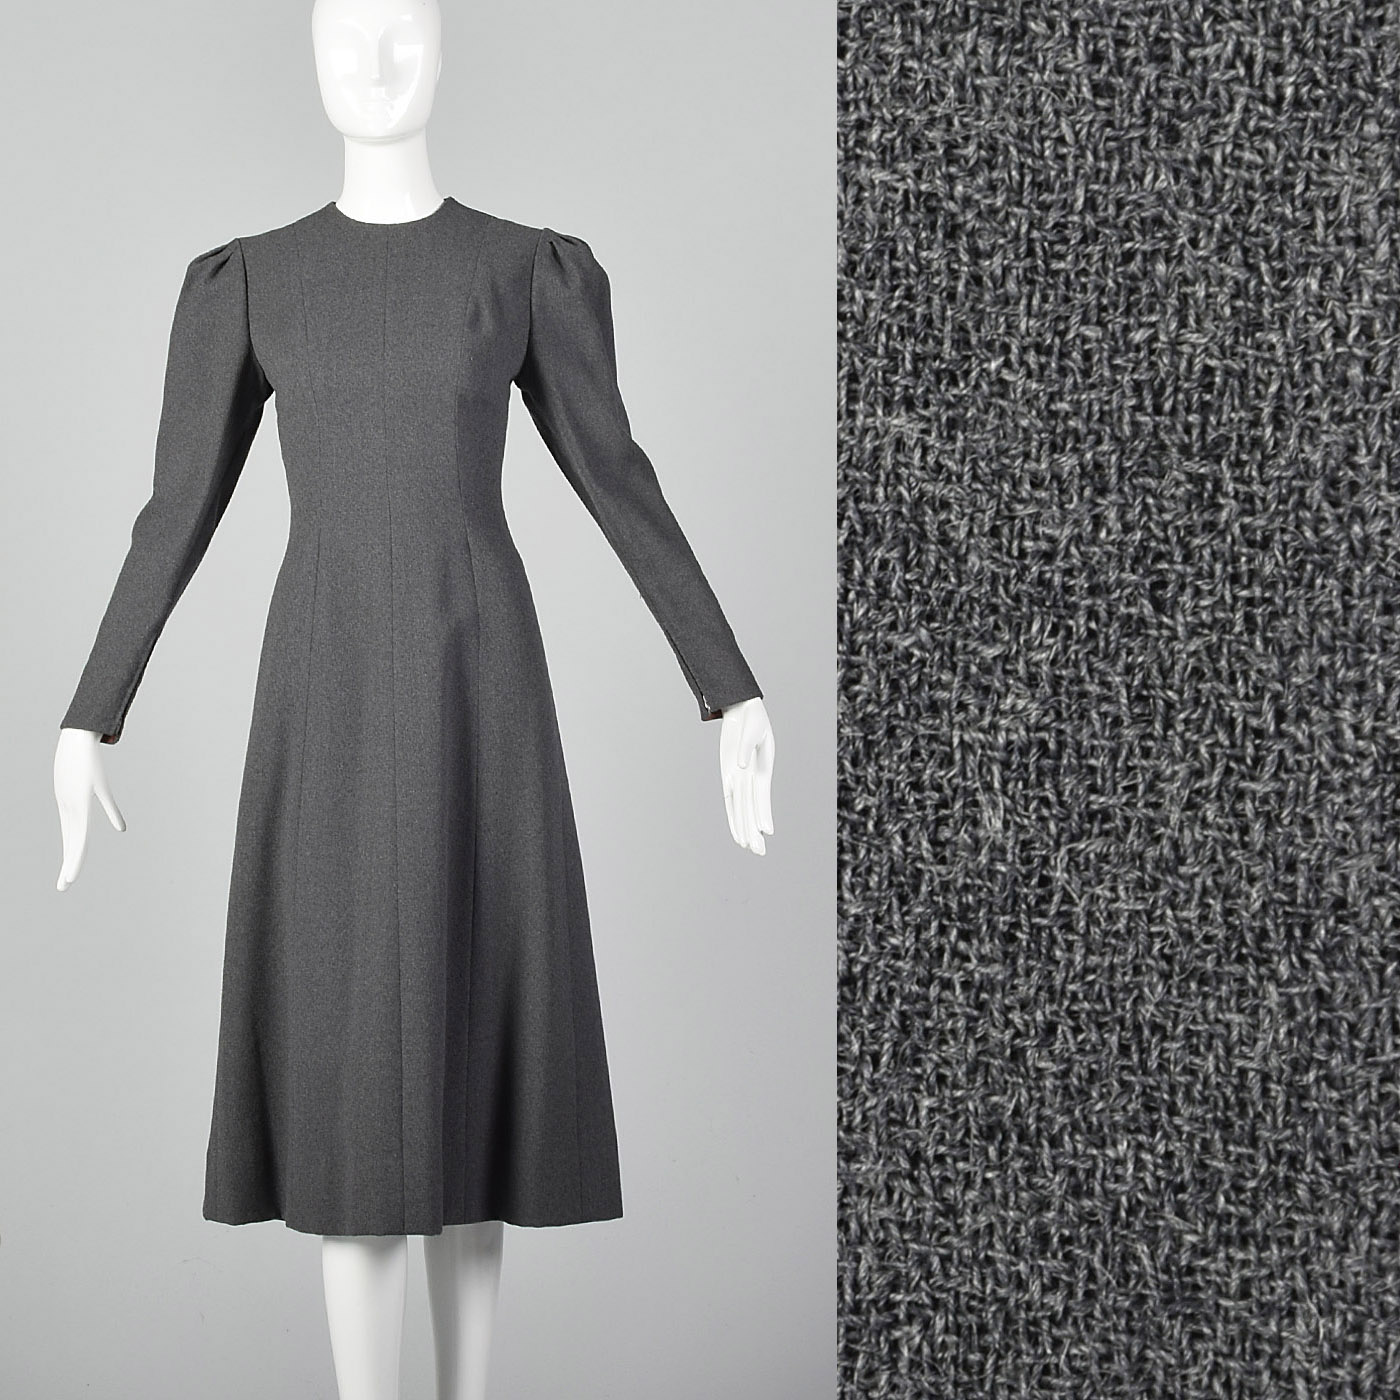 6988951ad0bd Details about S 1970s Pauline Trigere Gray Wool Crepe Dress Long Sleeves  Classic Minimalist